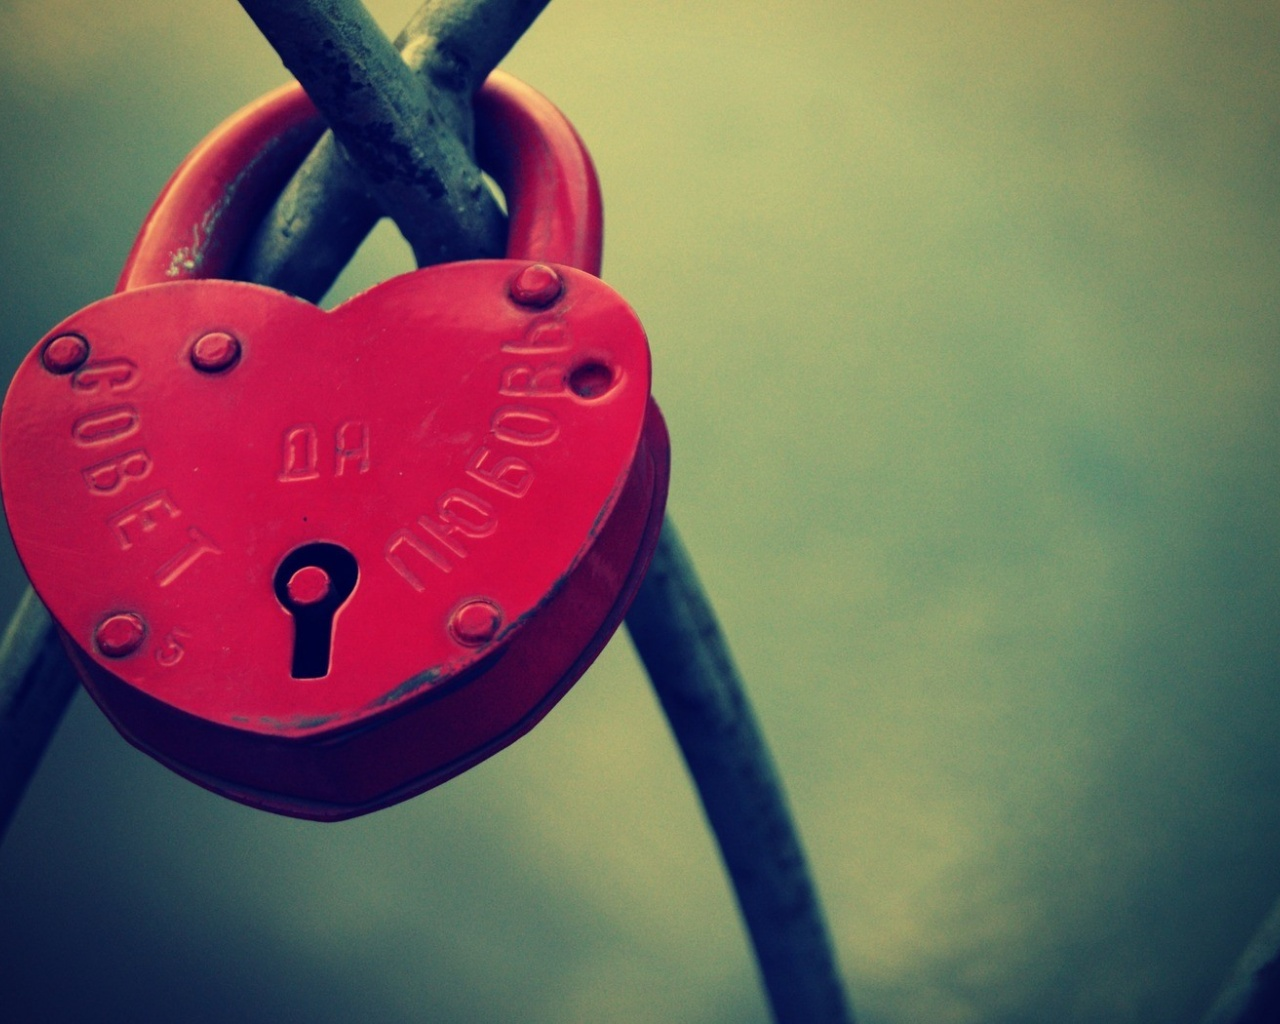 click to free download the wallpaper--Images of Romance, Heart-Shaped Lock on Green Background, Shall Move Lots of People 1280X1024 free wallpaper download